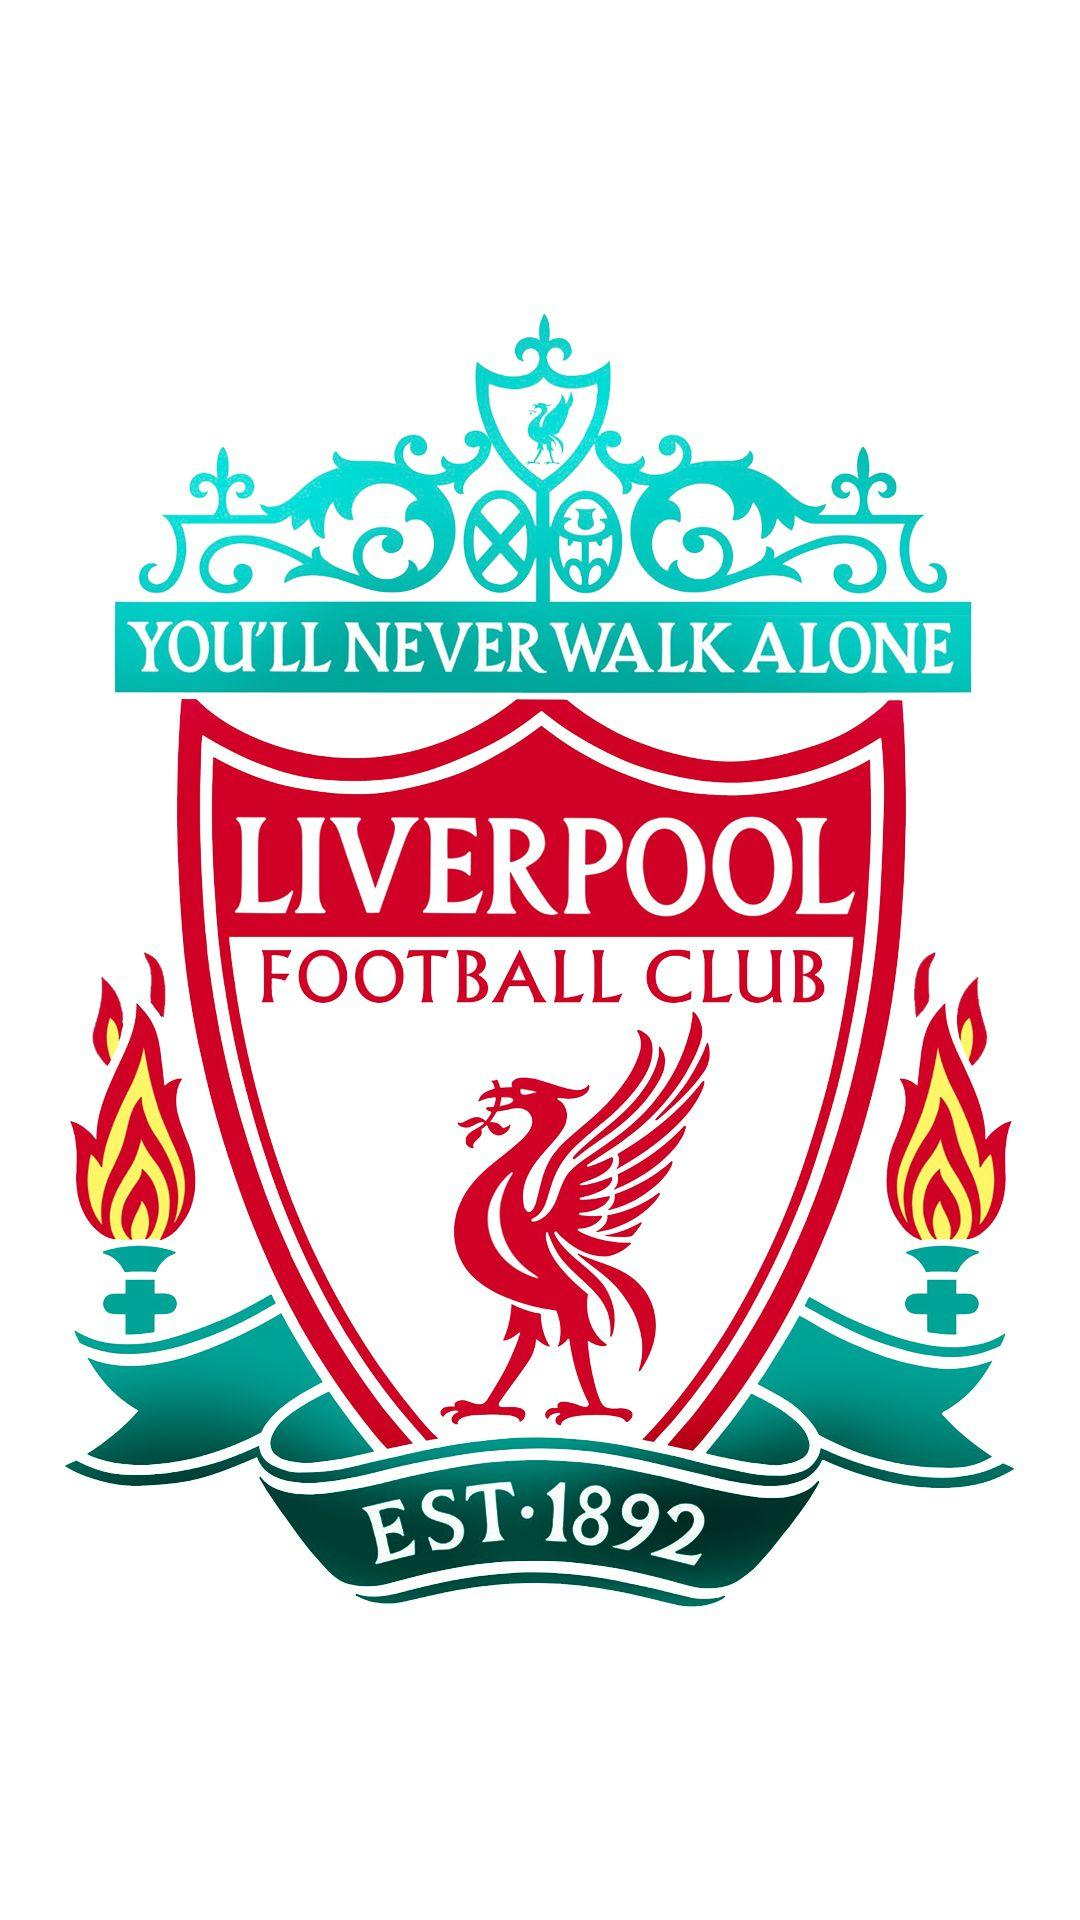 wallpapers logo liverpool 2016 wallpaper cave